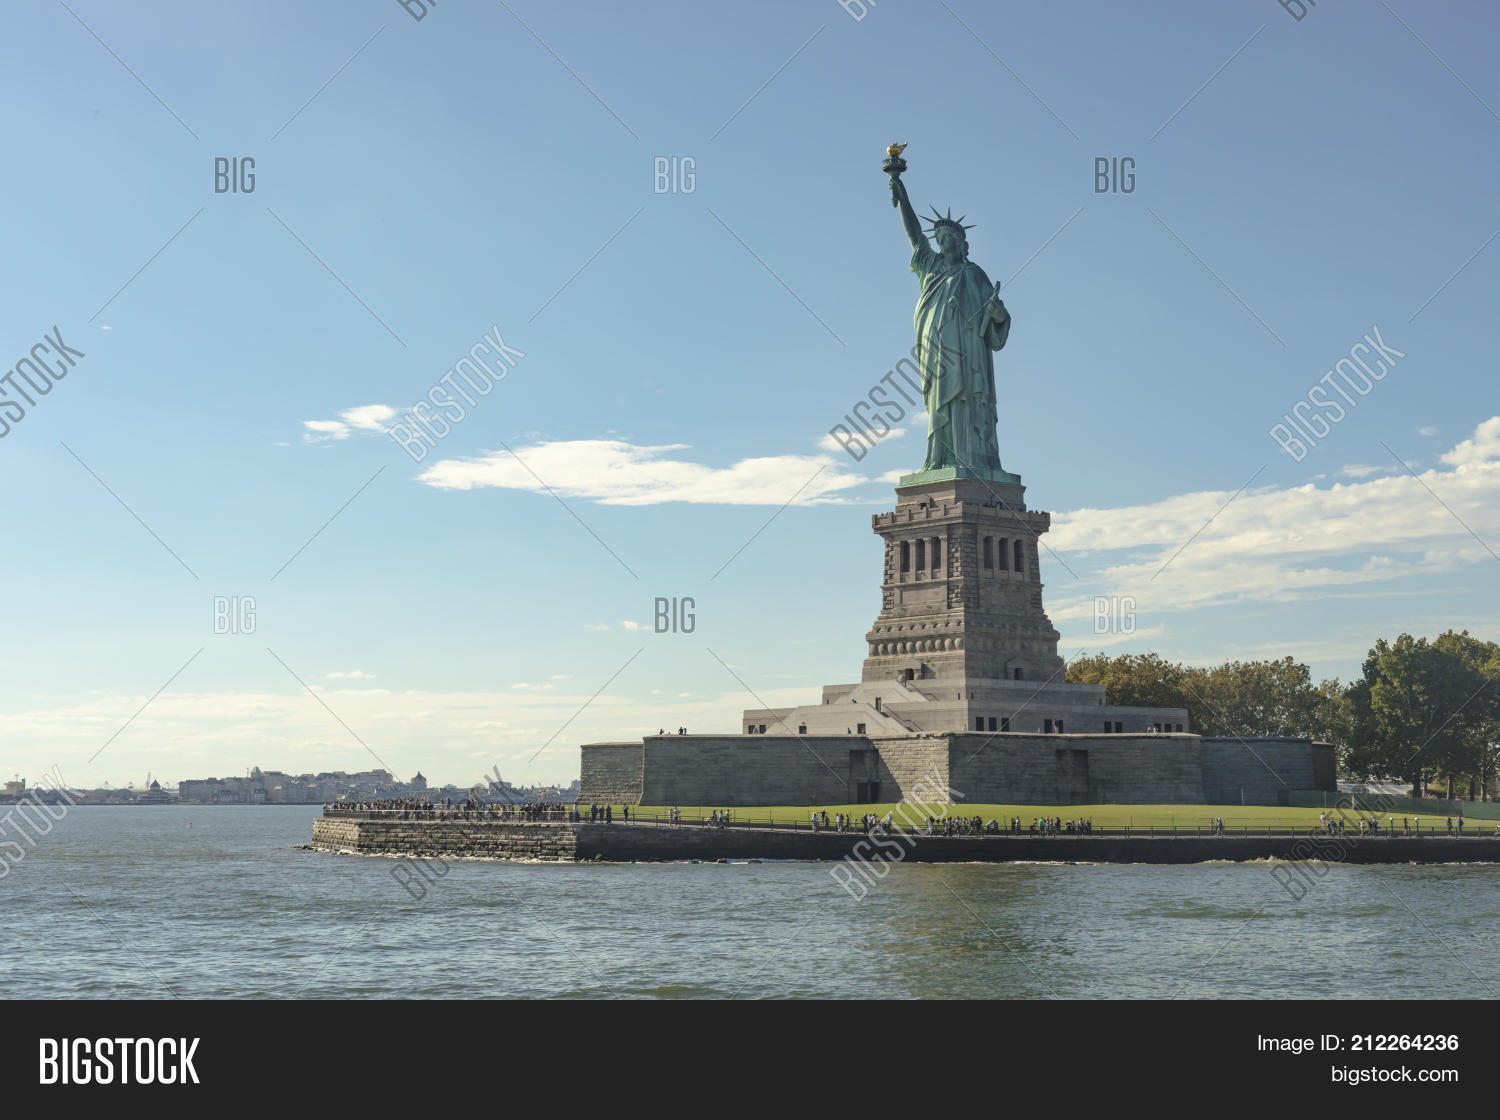 model in alloworigin statue accesskeyid visions disposition of liberty pedestal brick